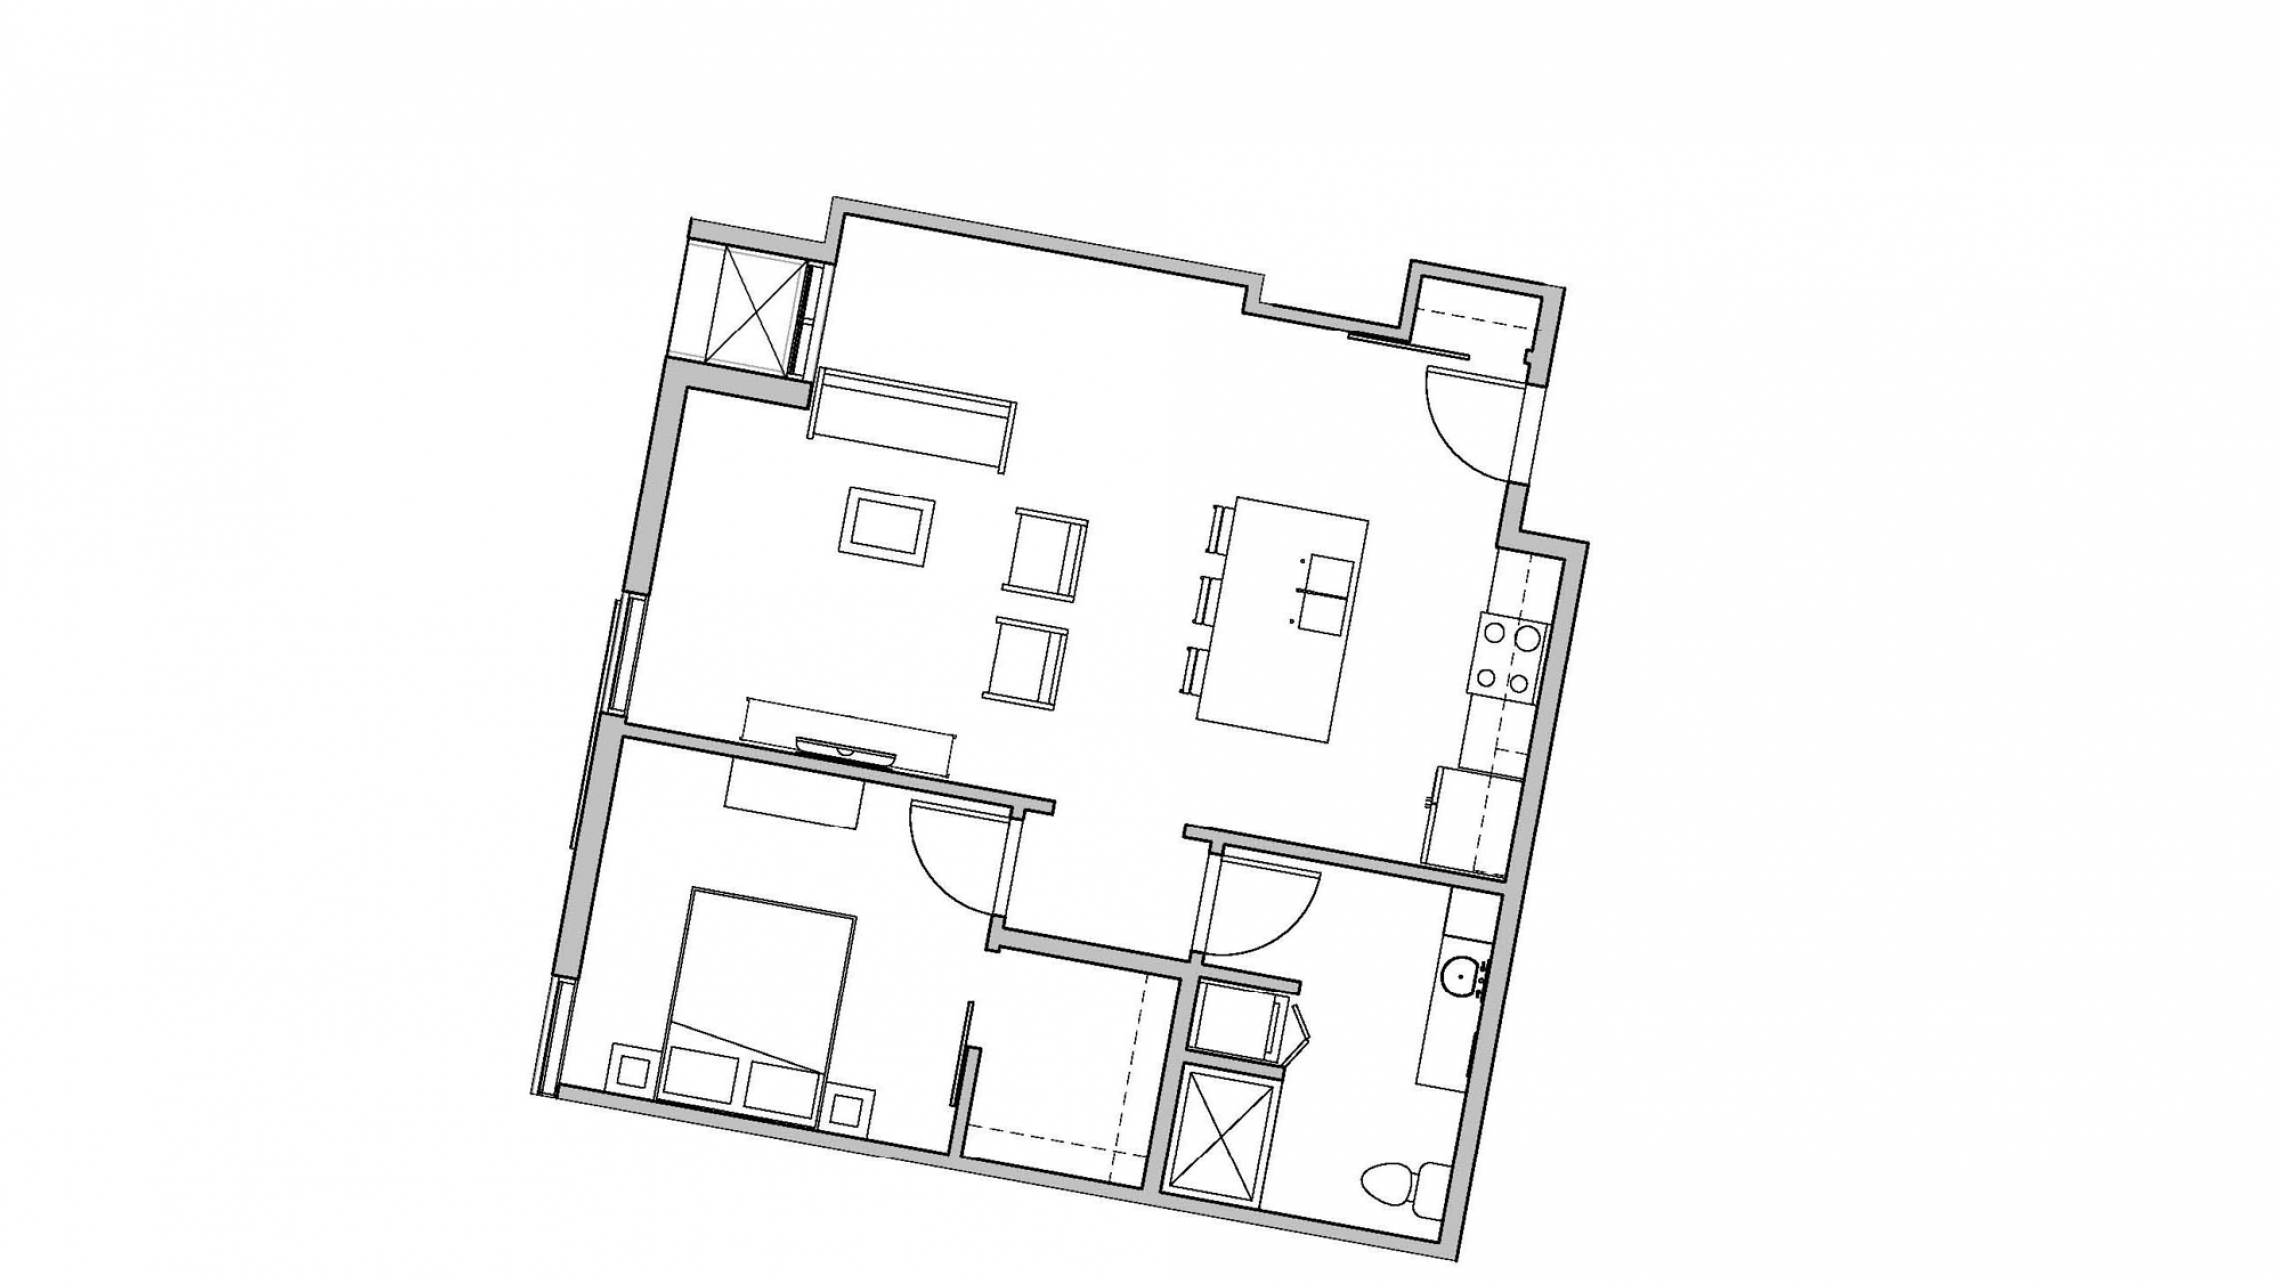 ULI Seven27 437 - One Bedroom, One Bathroom